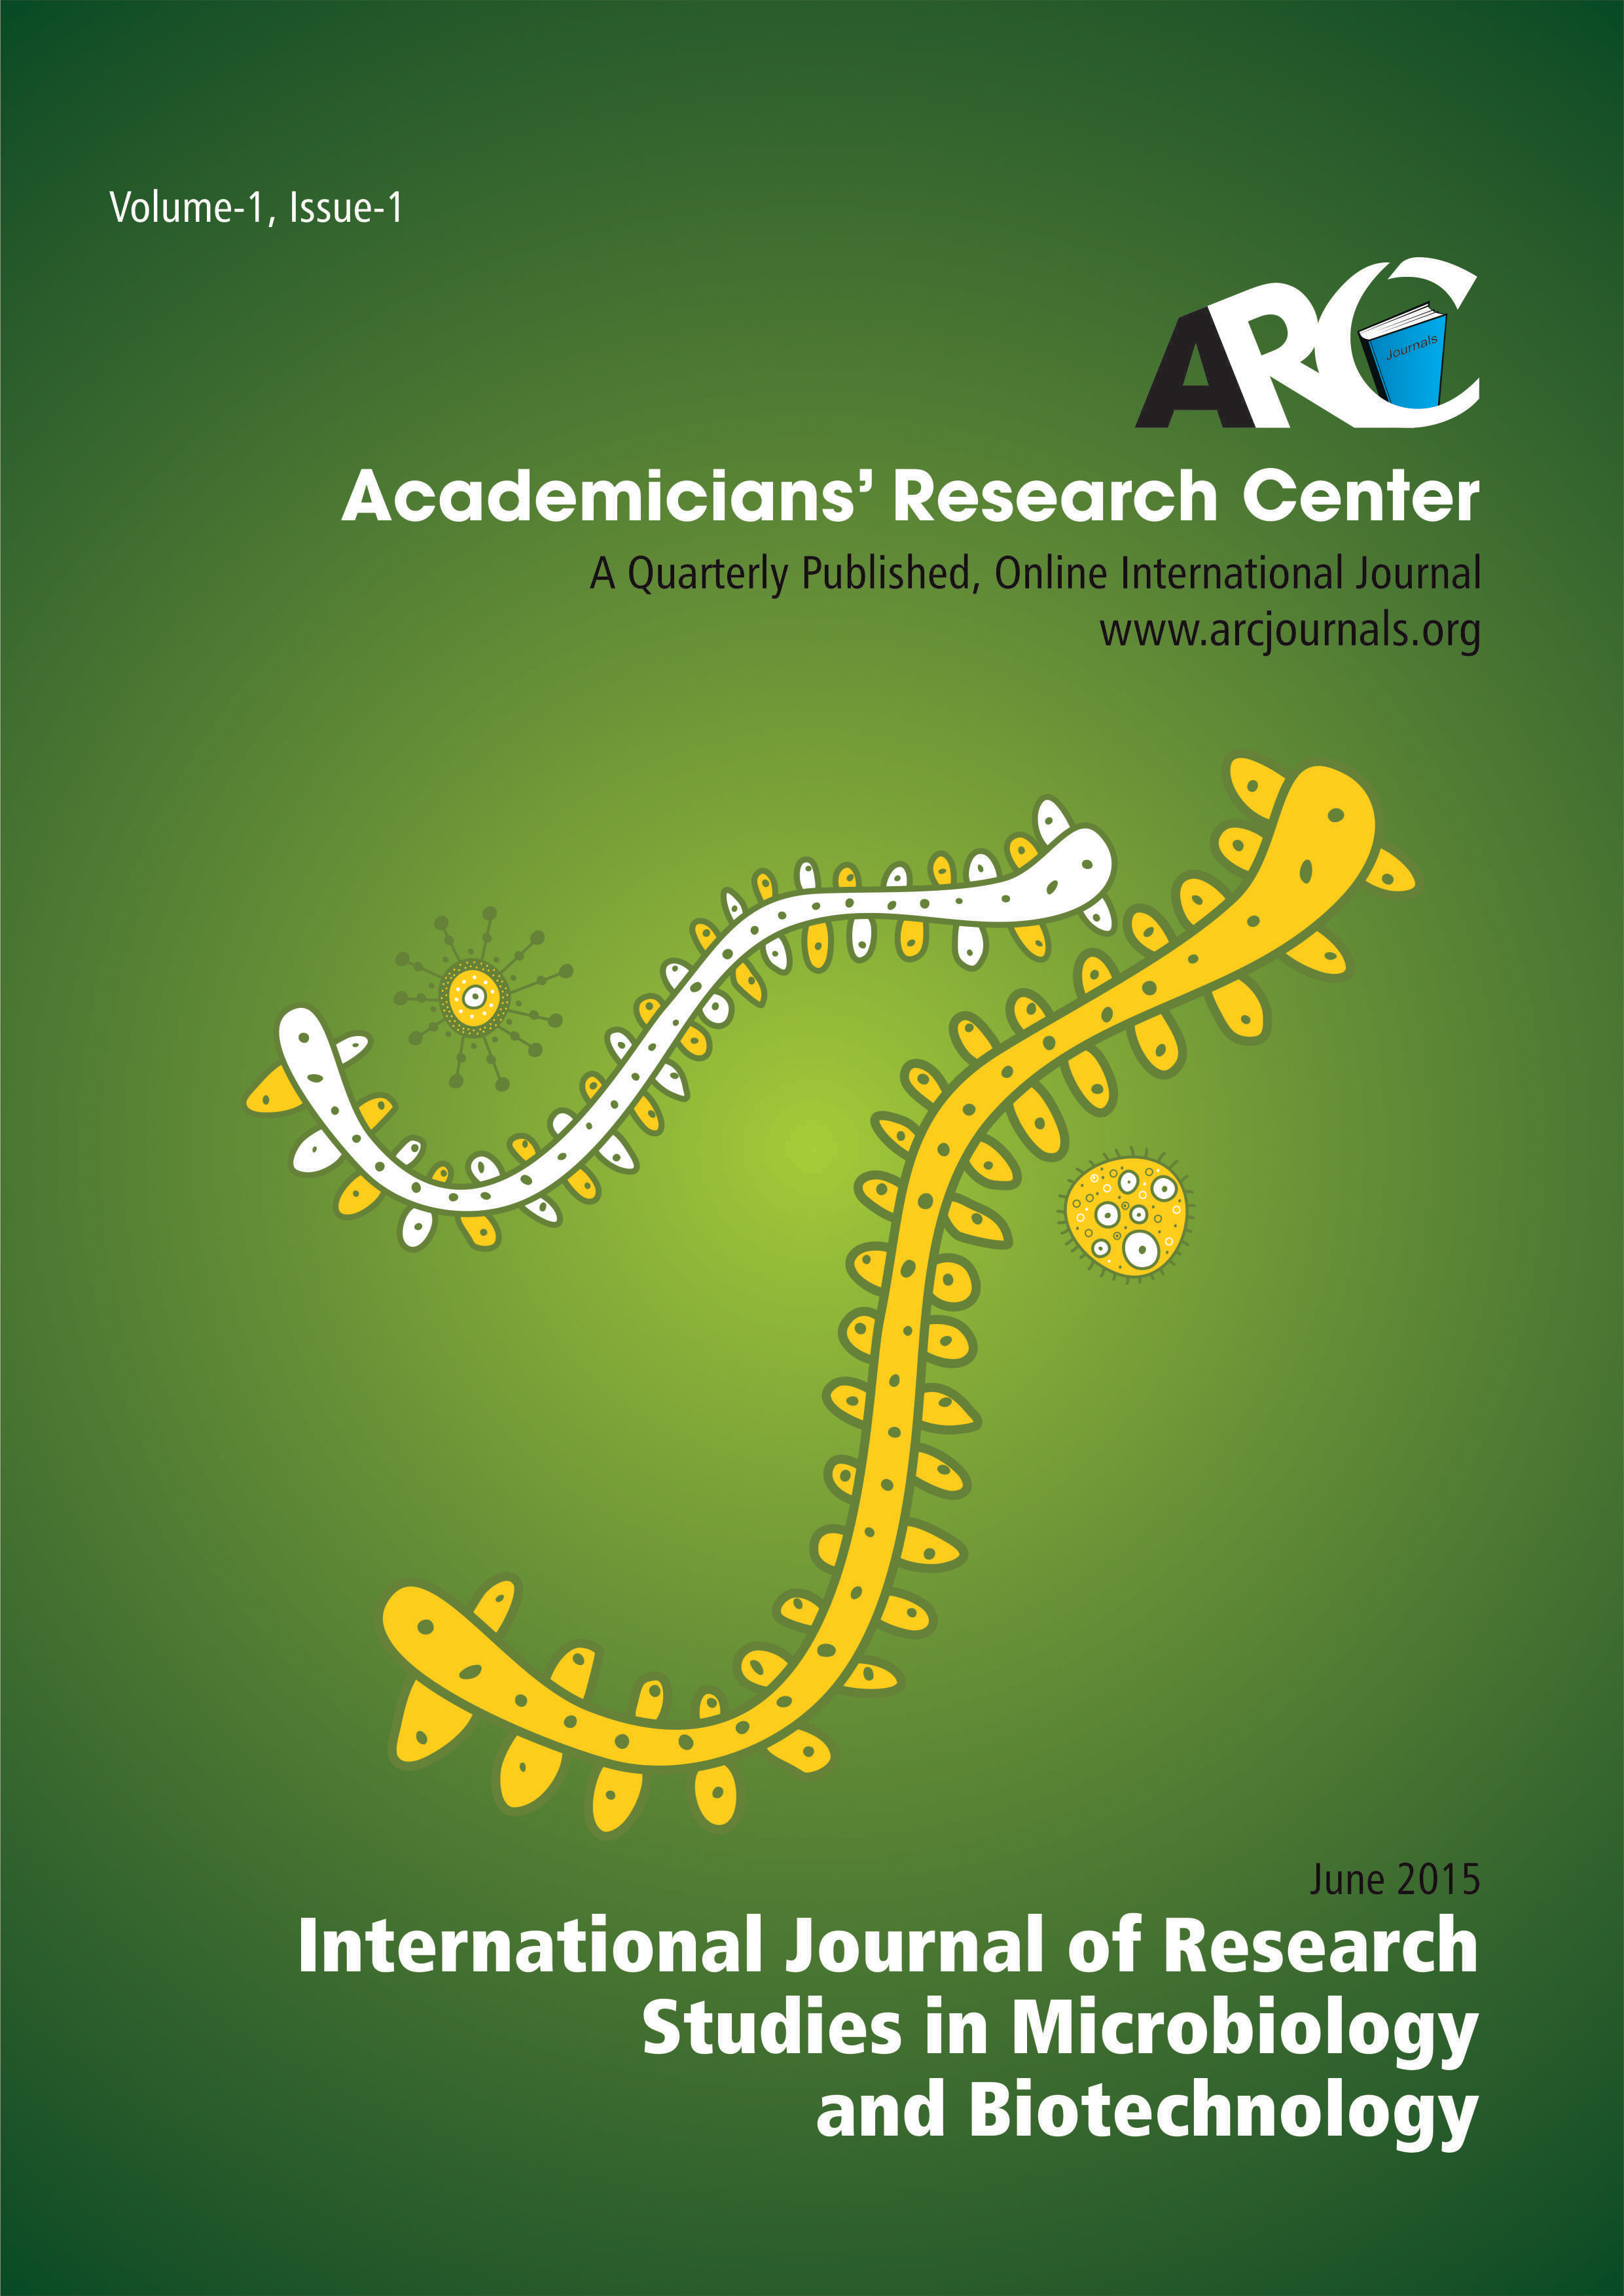 International Journal of Research Studies in Microbiology and Biotechnology